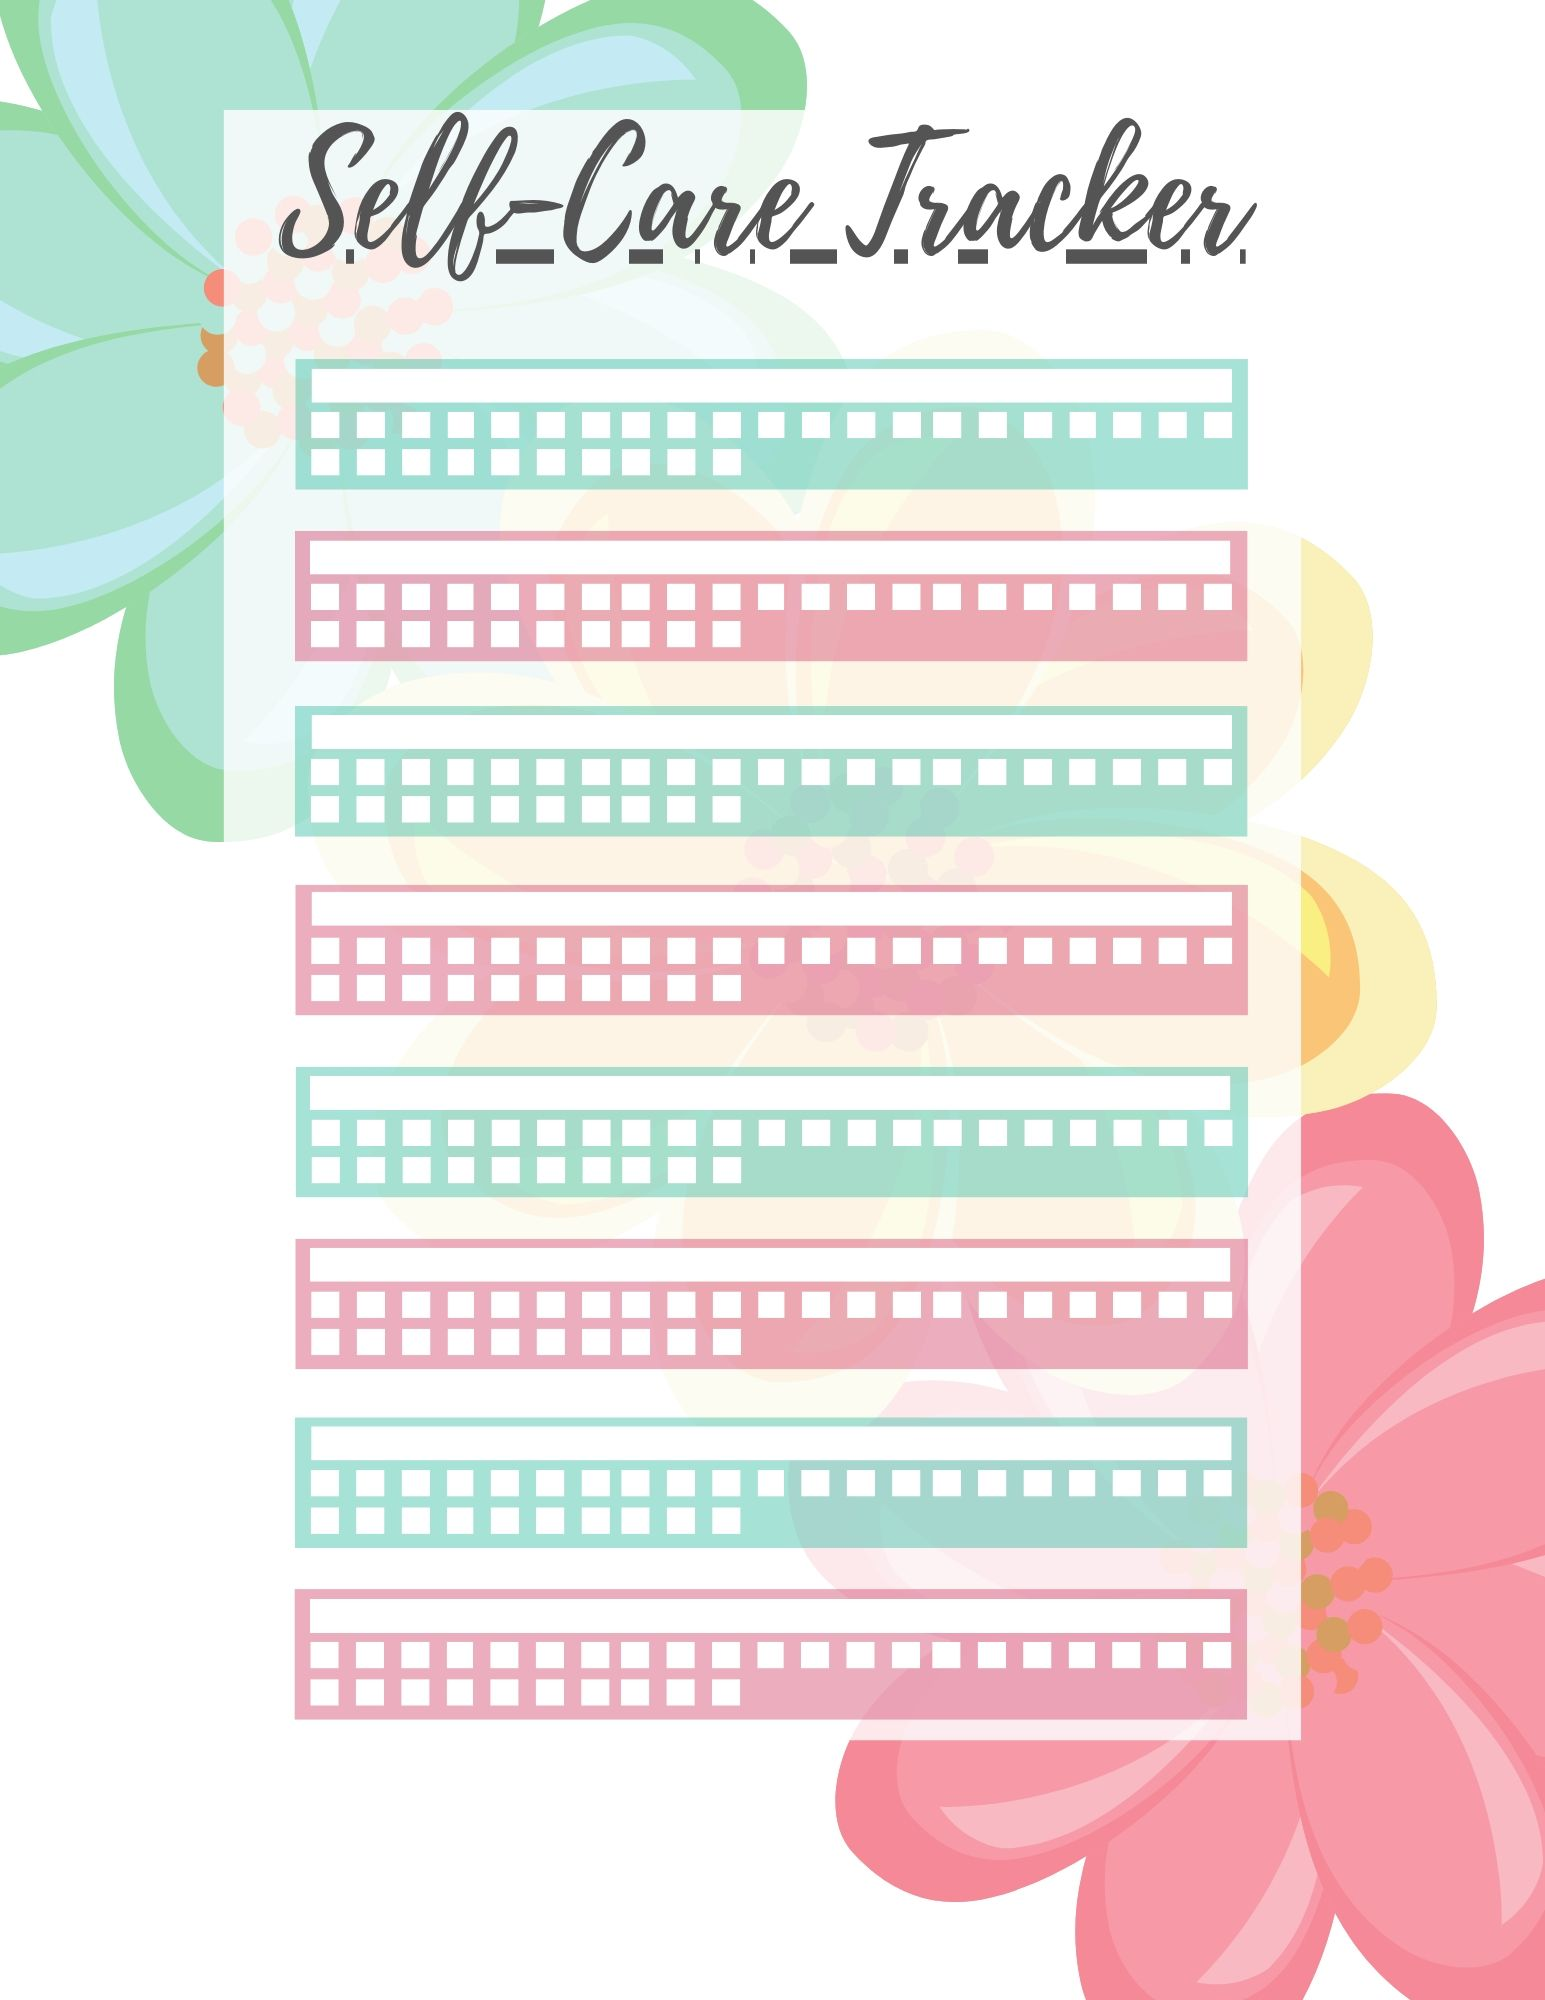 Self-Care Planning Toolkit Floral Edition